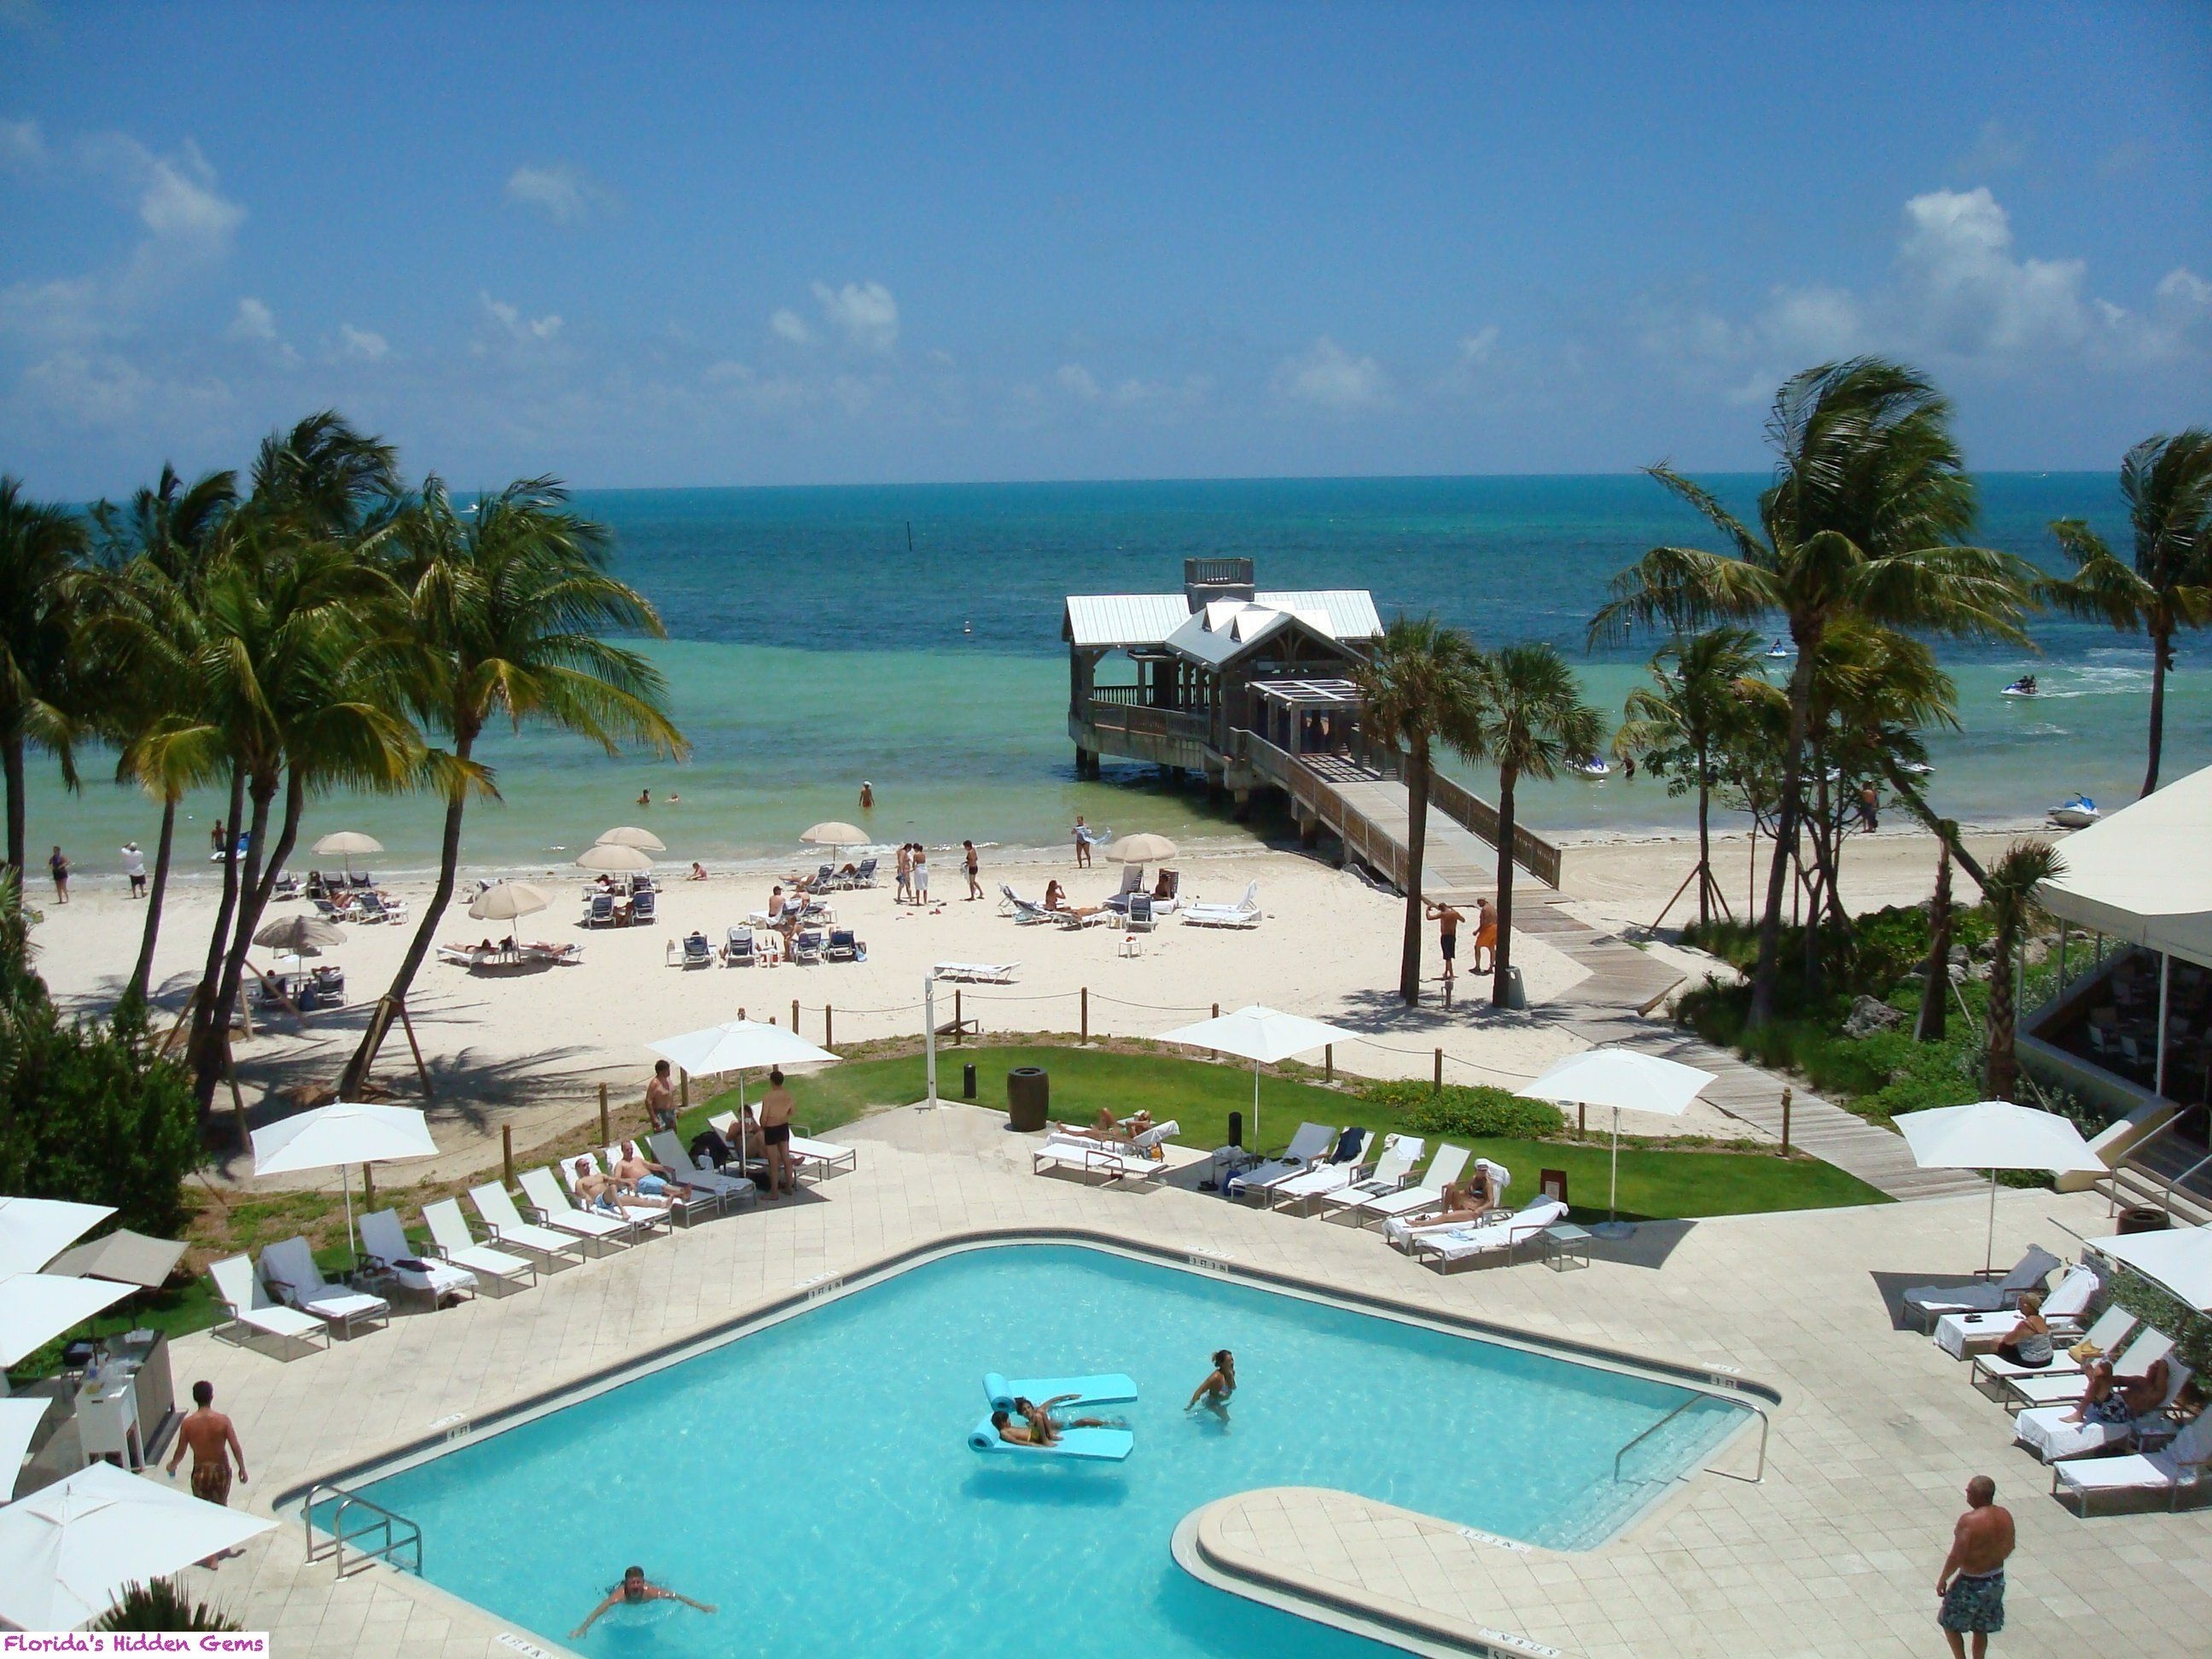 Hotels In Key West >> Key West Florida Hotels Where To Stay In Key West Florida S